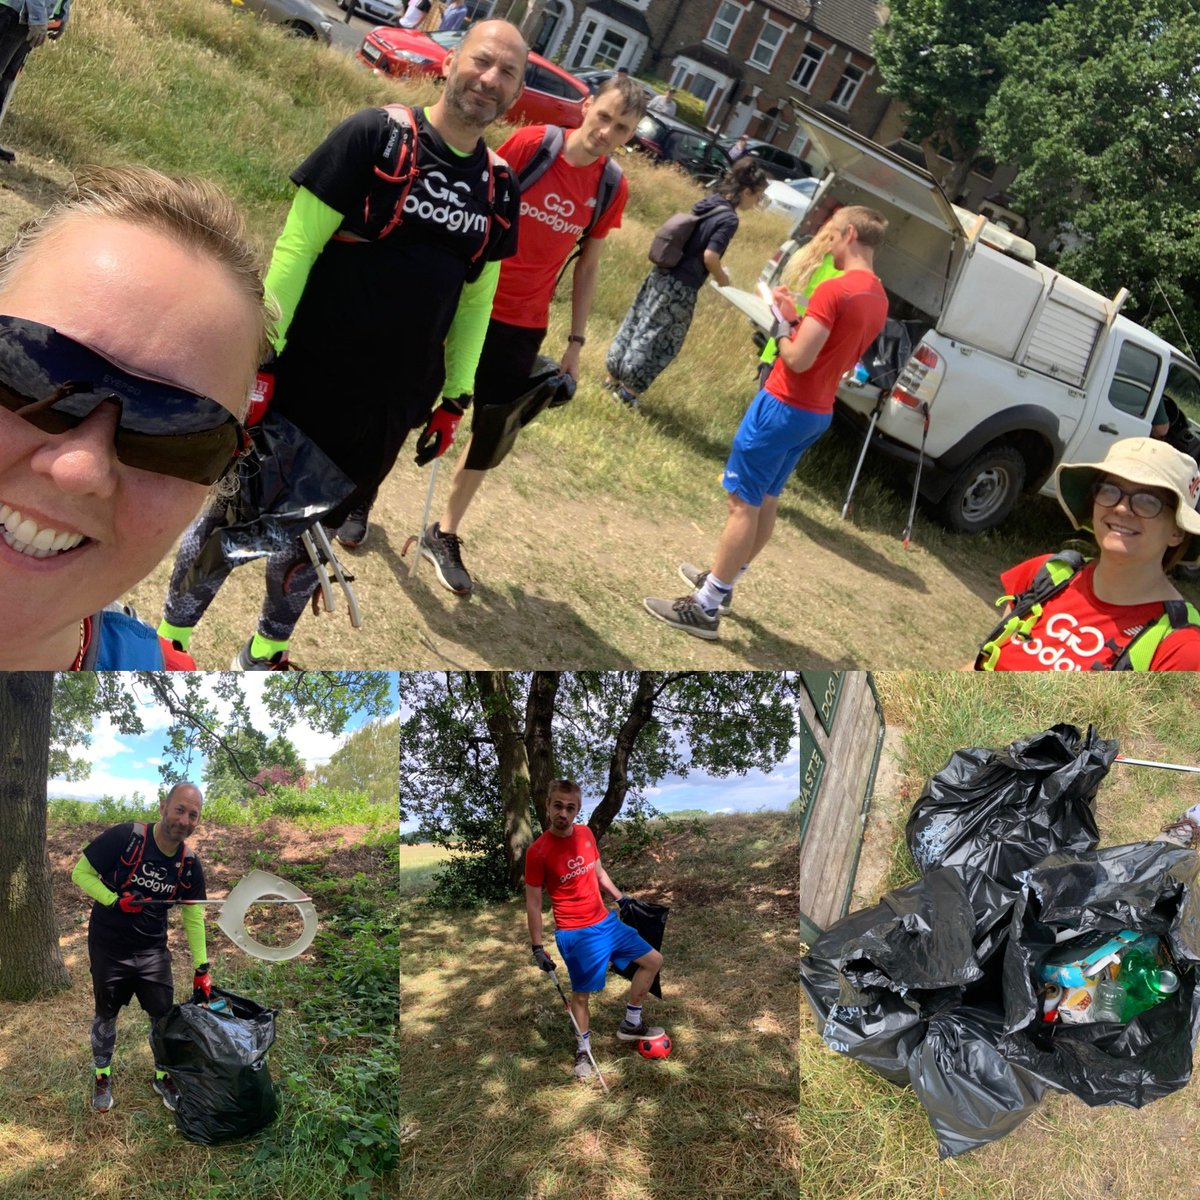 Some of the team headed to #WansteadFlats to help @Flats_Pickers @CoLEppingForest with their monthly litter pick, we added to the near 50 volunteers who collected  90 bags of rubbish https://t.co/w3LcC3vnv7 #goodgym #wehatelitter #KeepBritainTidy #takeithome https://t.co/0h3aqENiRz